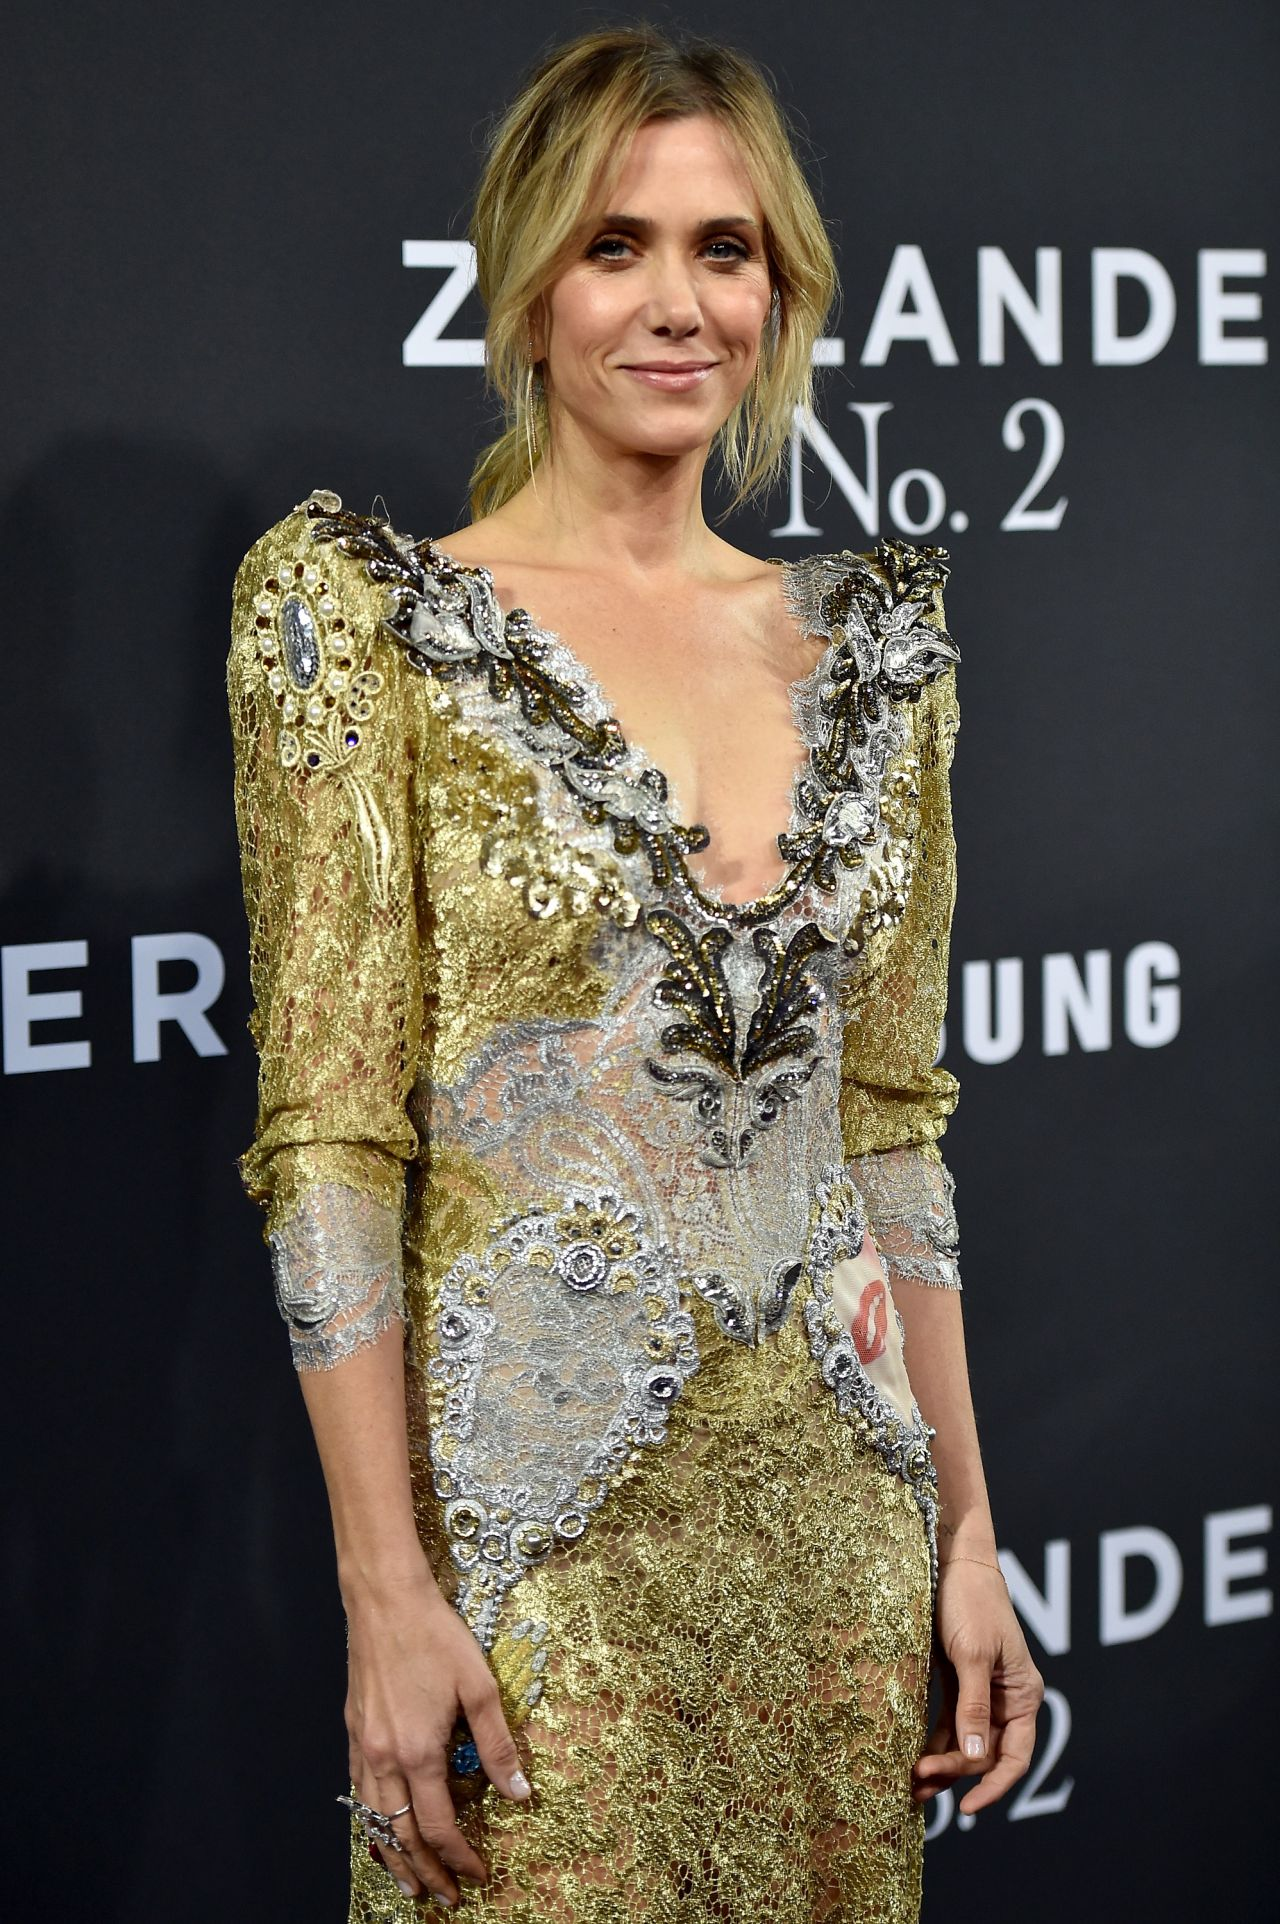 kristen-wiig-zoolander-2-world-premiere-in-new-york-city-ny-2